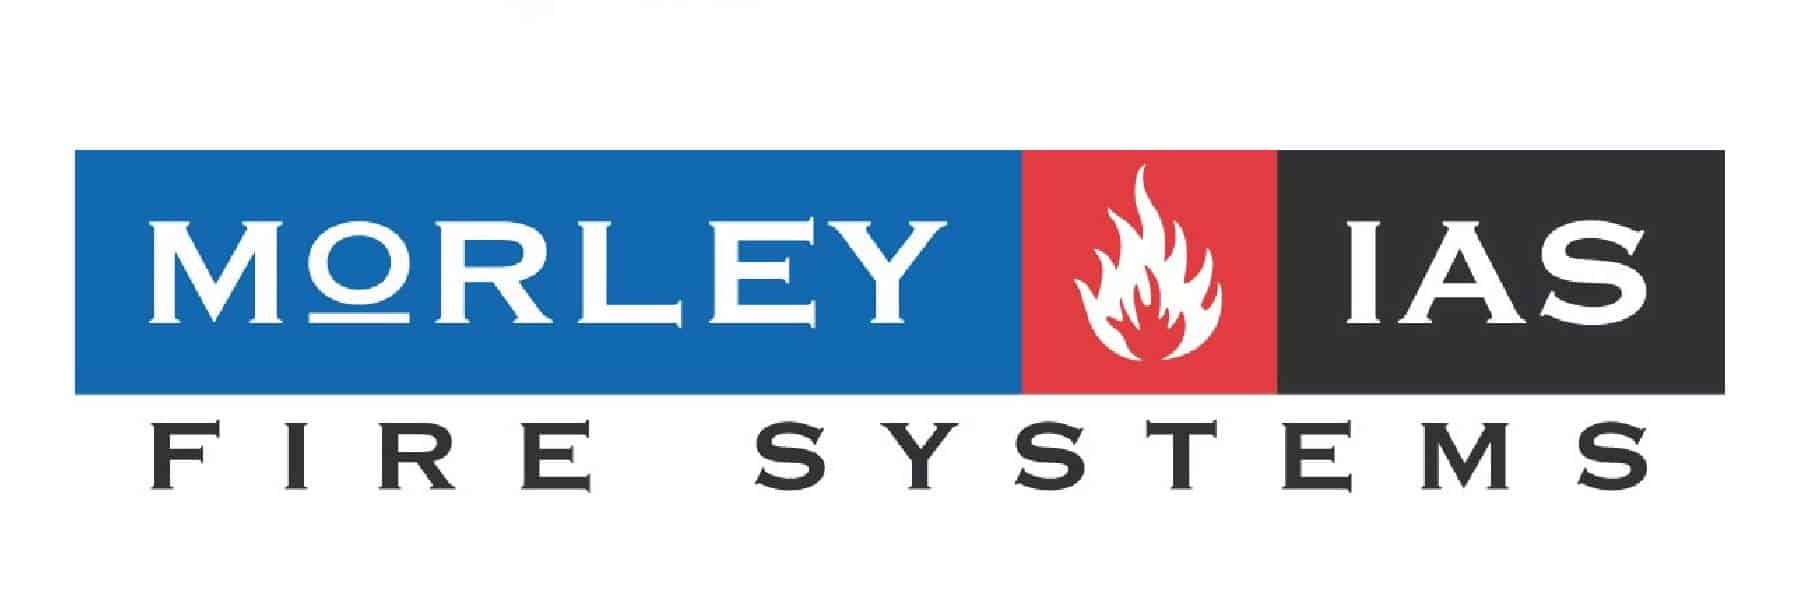 morley ias fire systems